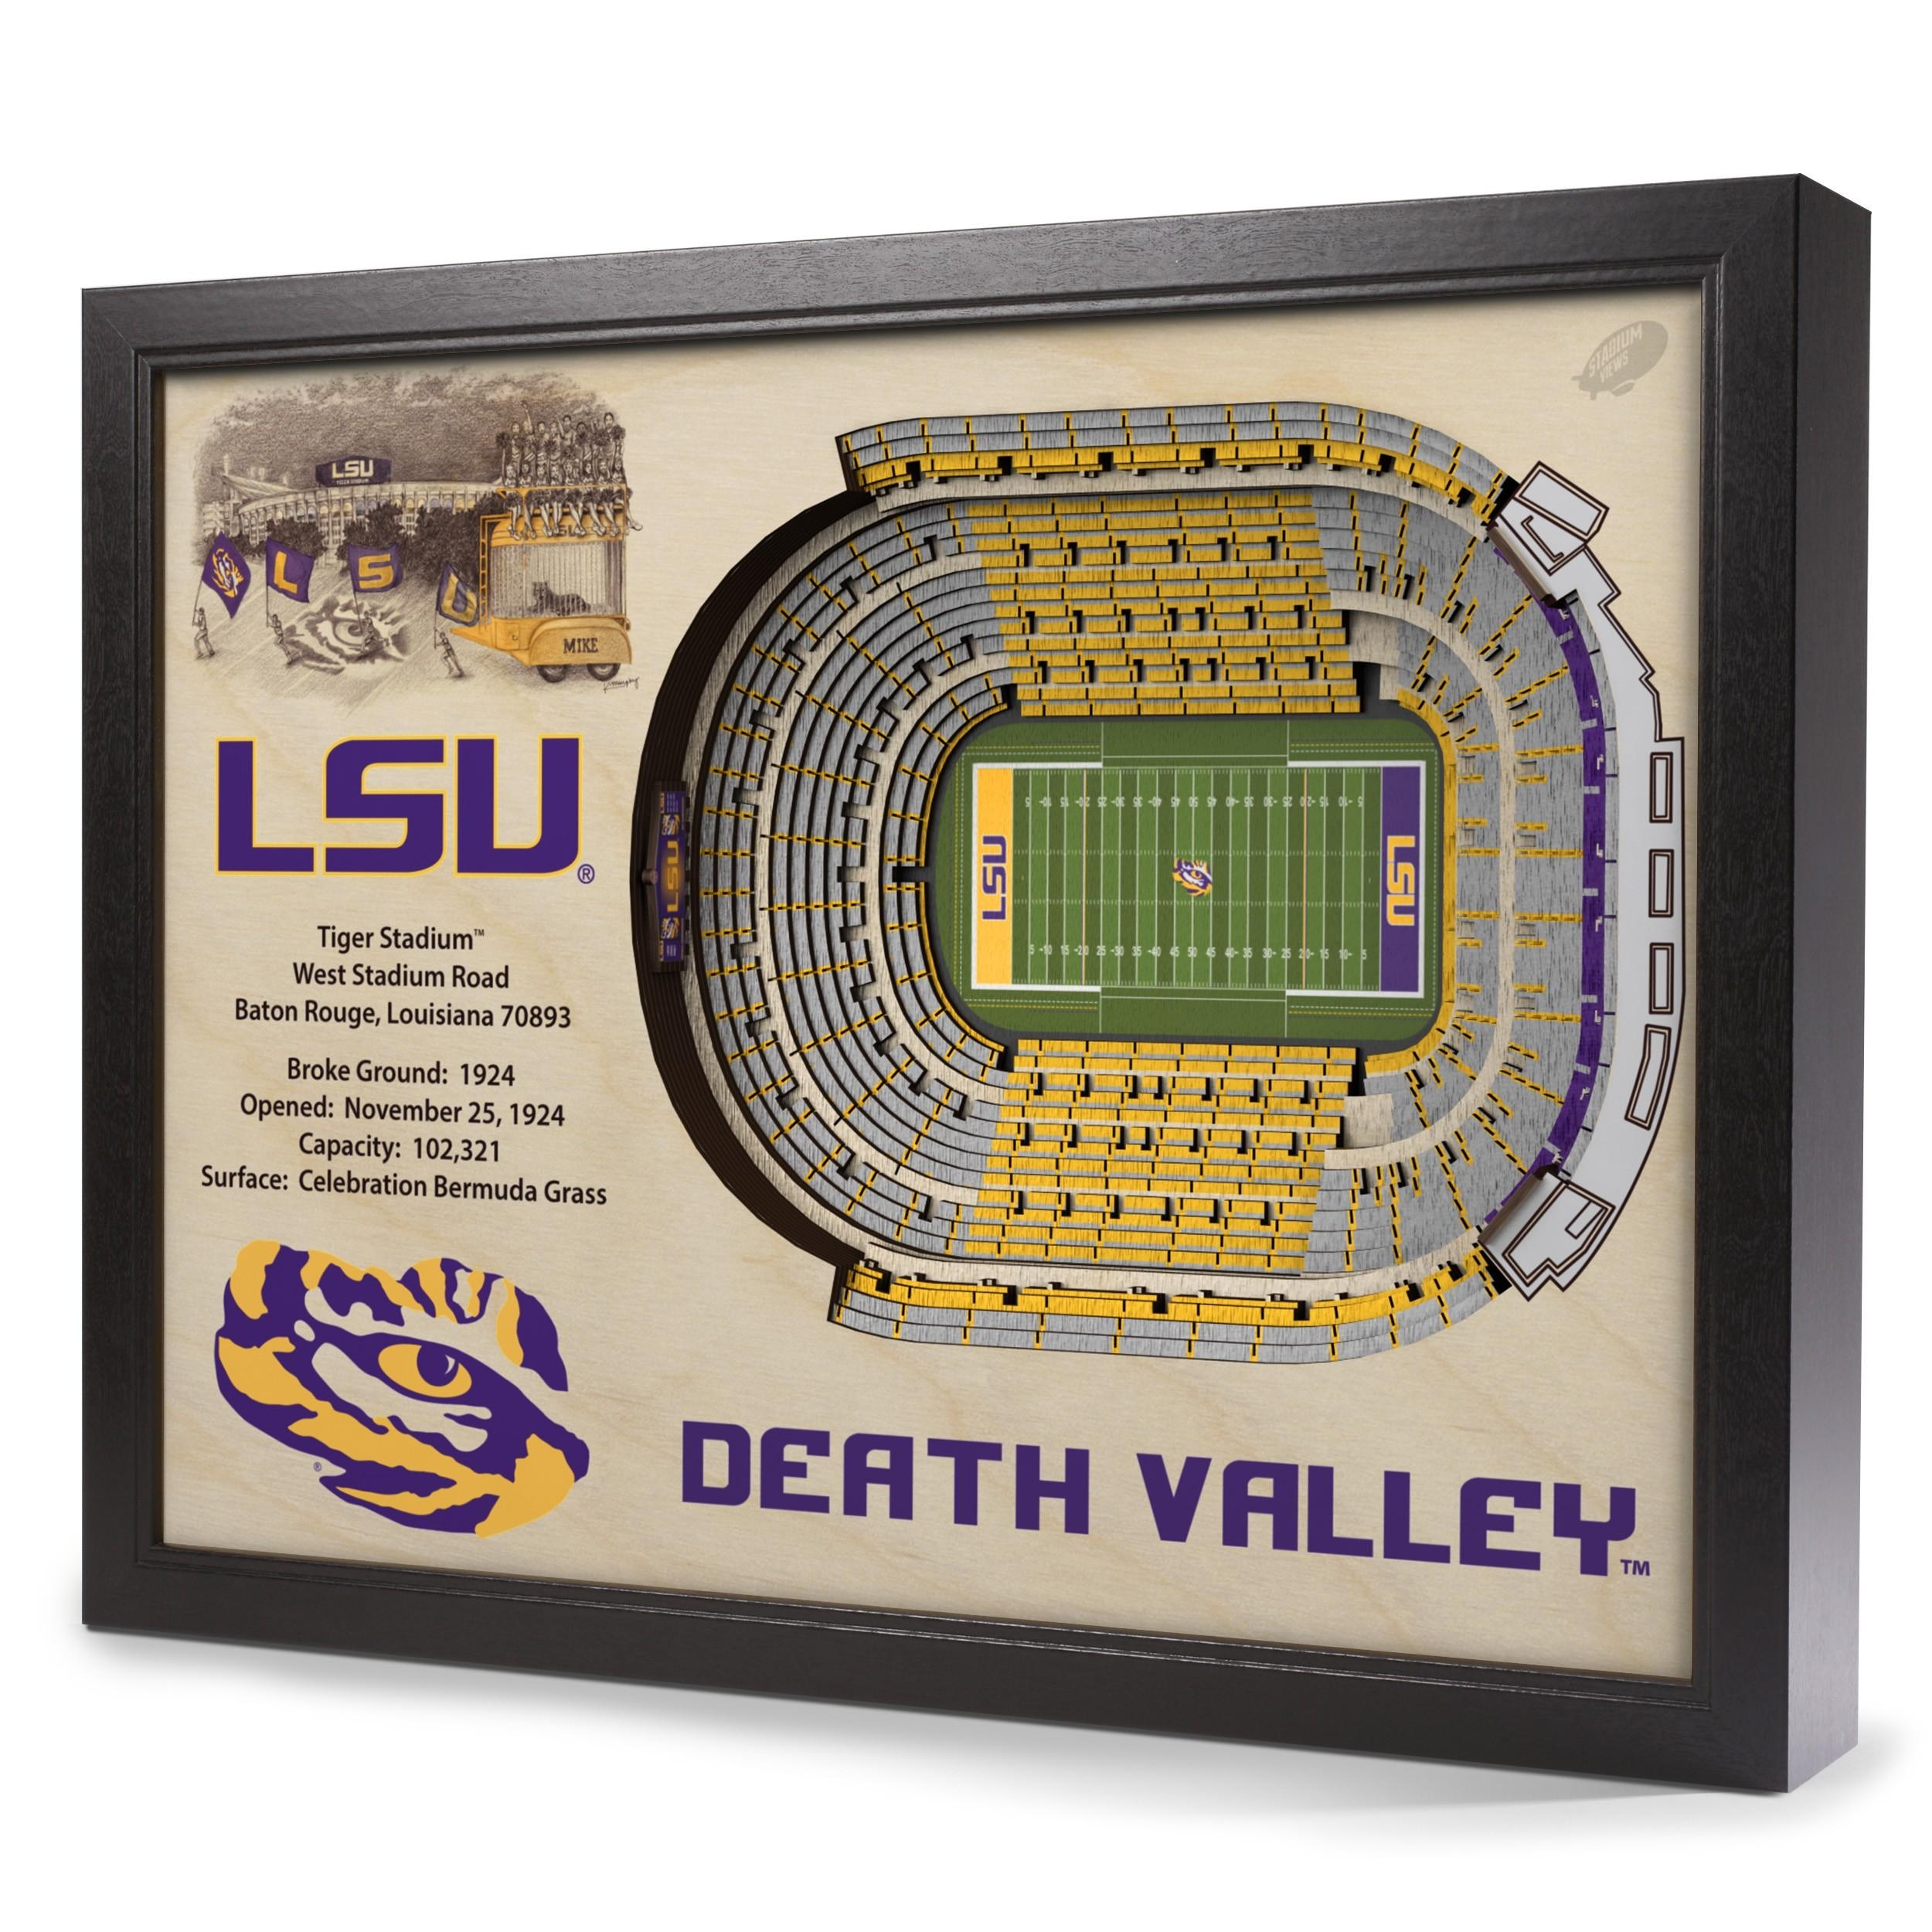 Lsu Tigers Stadiumview Wall Art – Tiger Stadium 3 D Reproduction Inside Lsu Wall Art (Image 16 of 20)